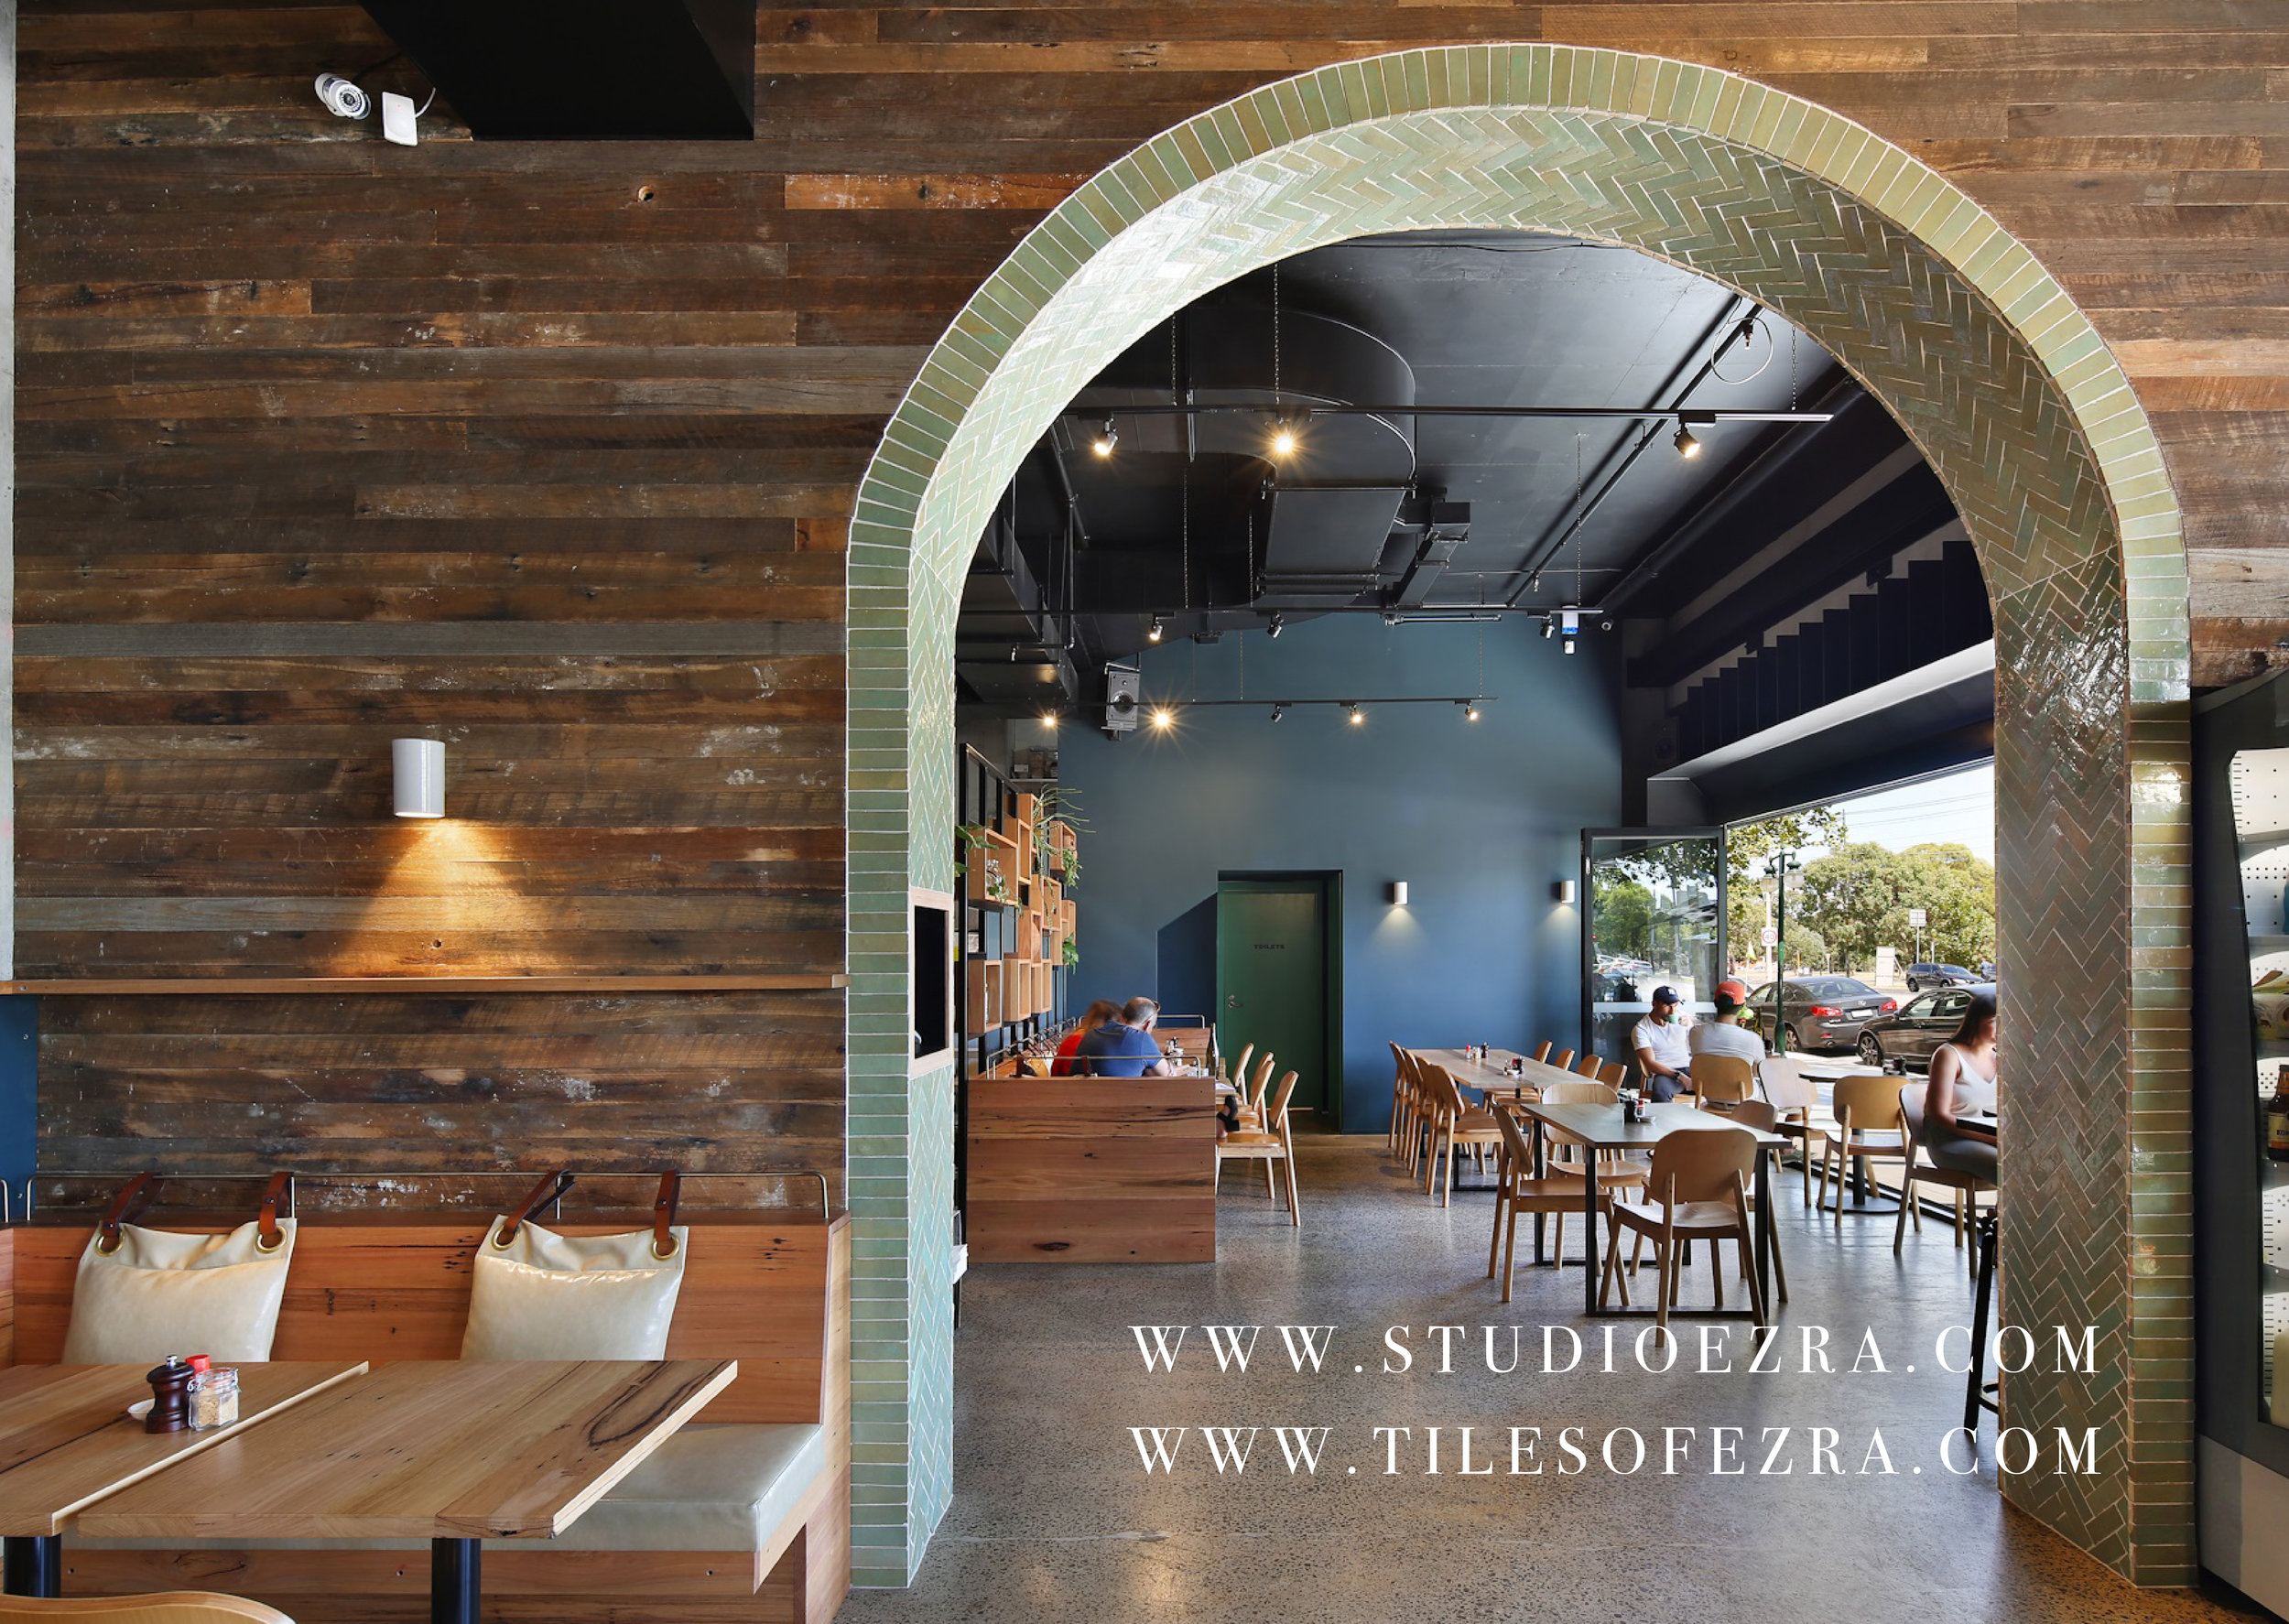 Tilesofezra FL006 Aqua The staple cafe Moroccan tiles 7.jpg